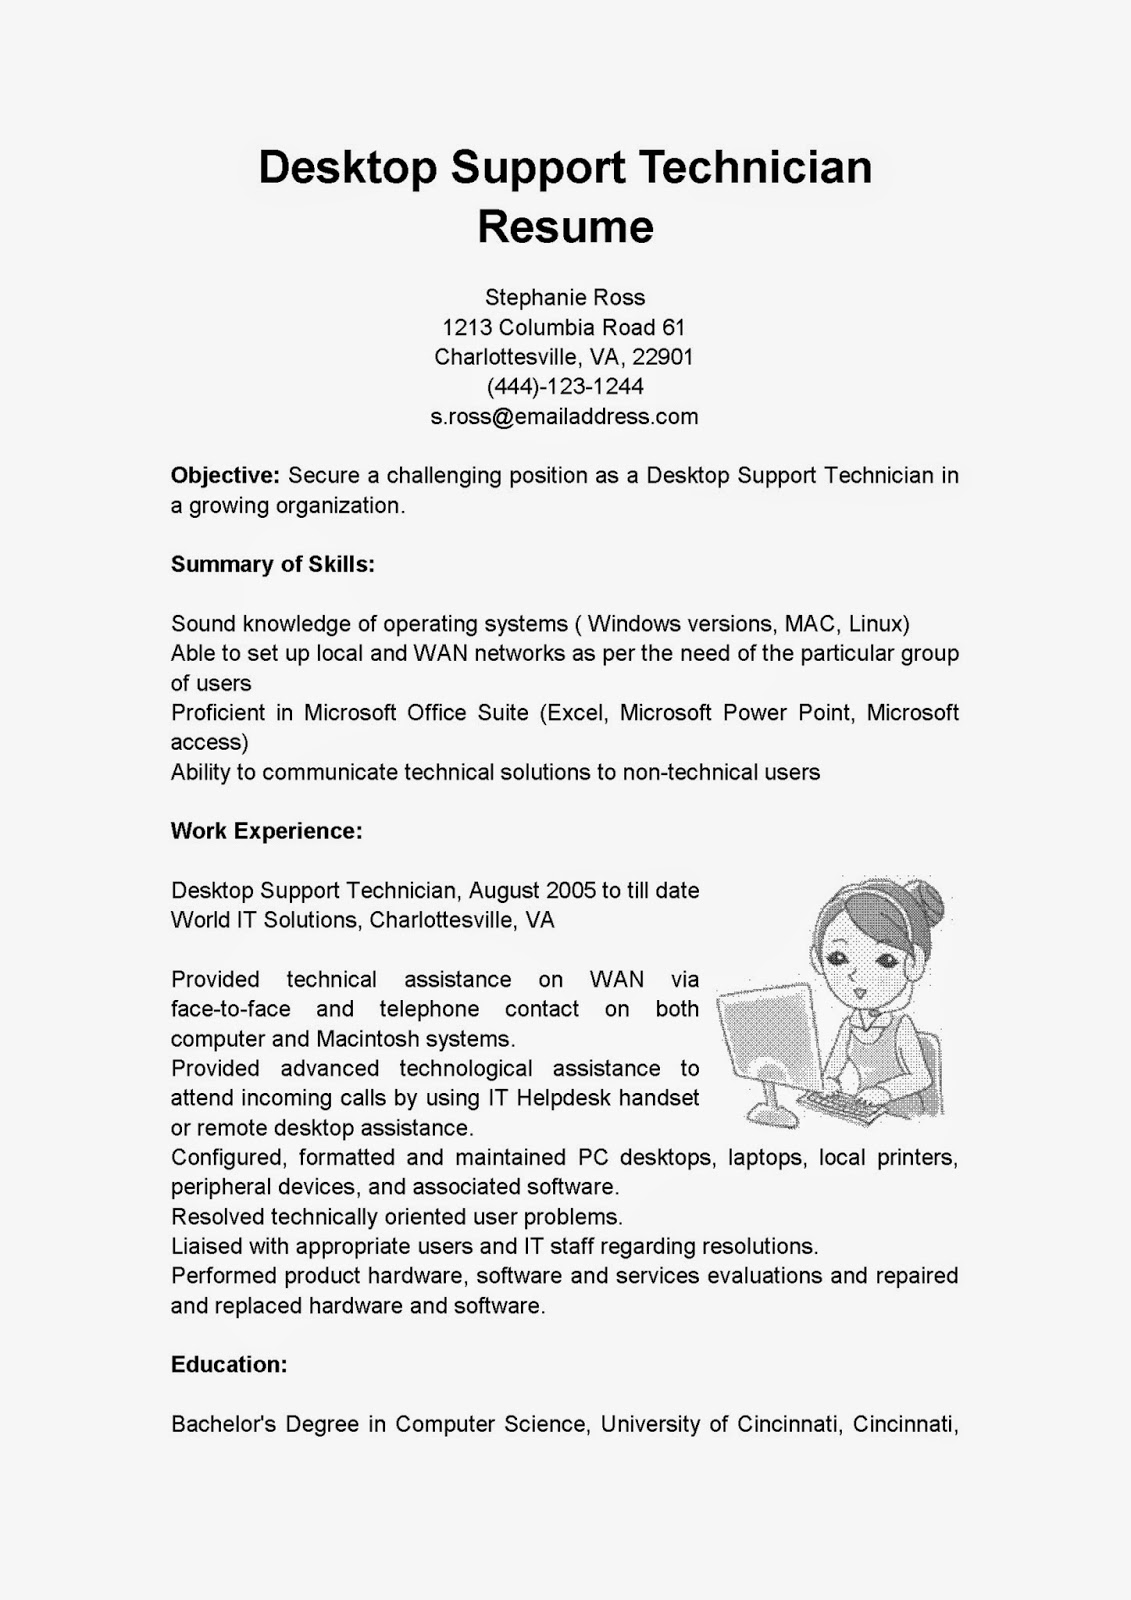 Copier Technician Resume Resume Samples Desktop Support Technician Resume Sample